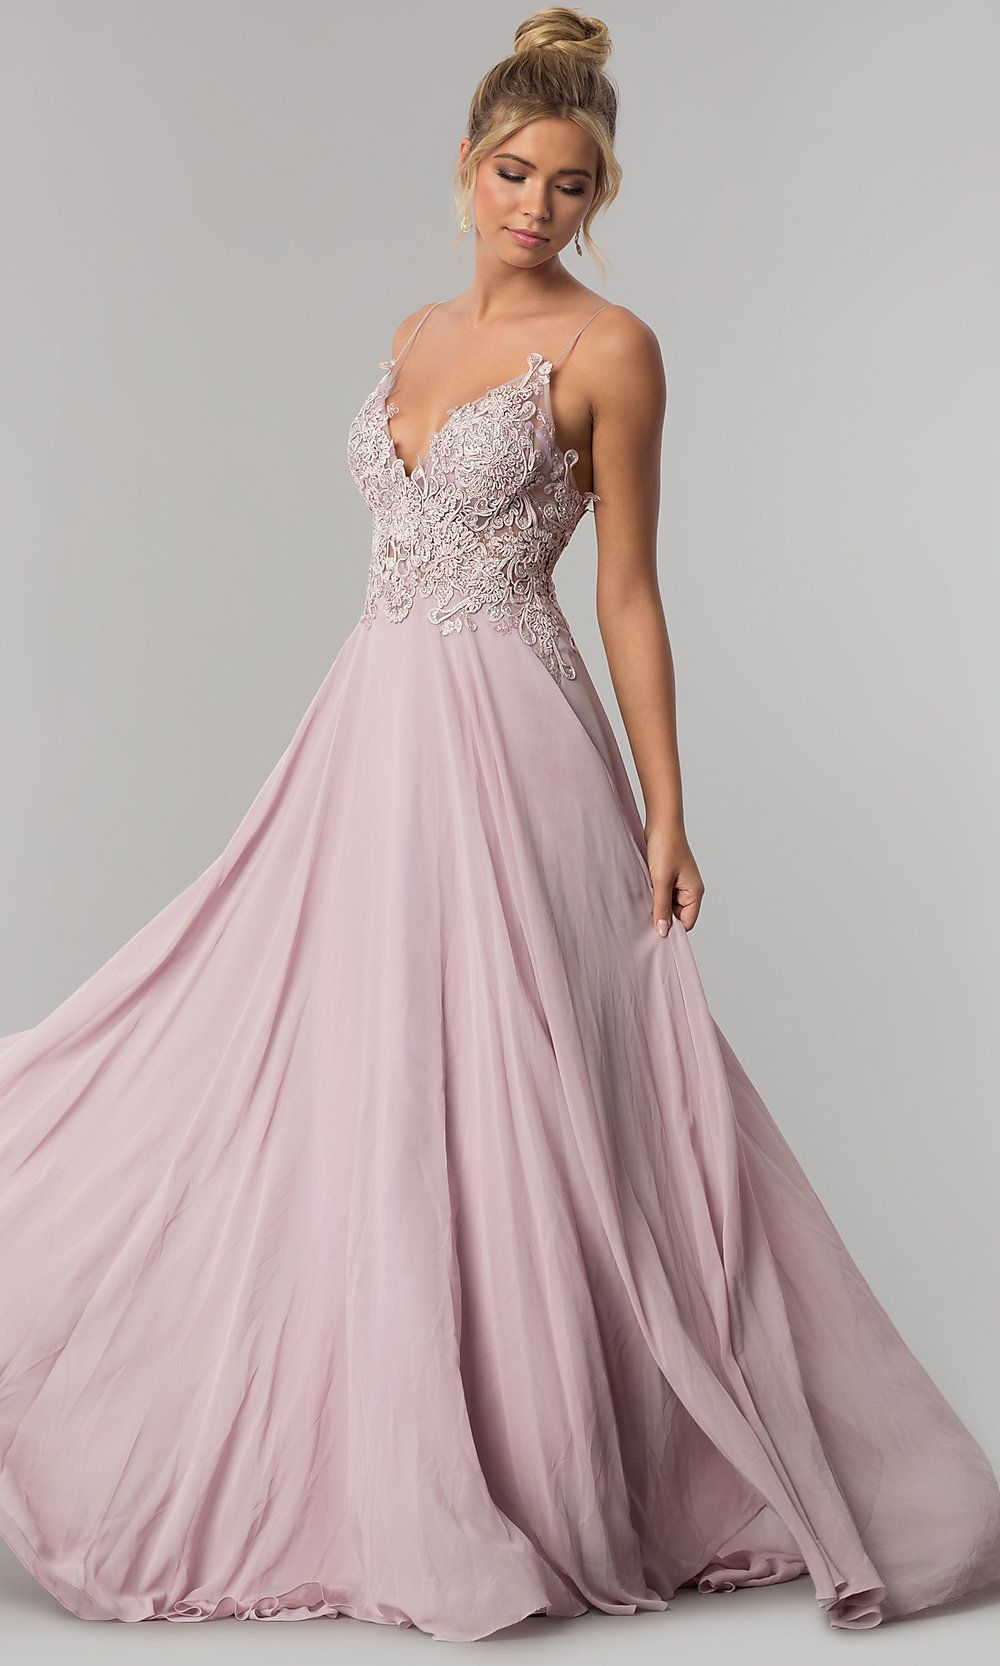 Long Chiffon Prom Dress with Sheer Sides - PromGirl